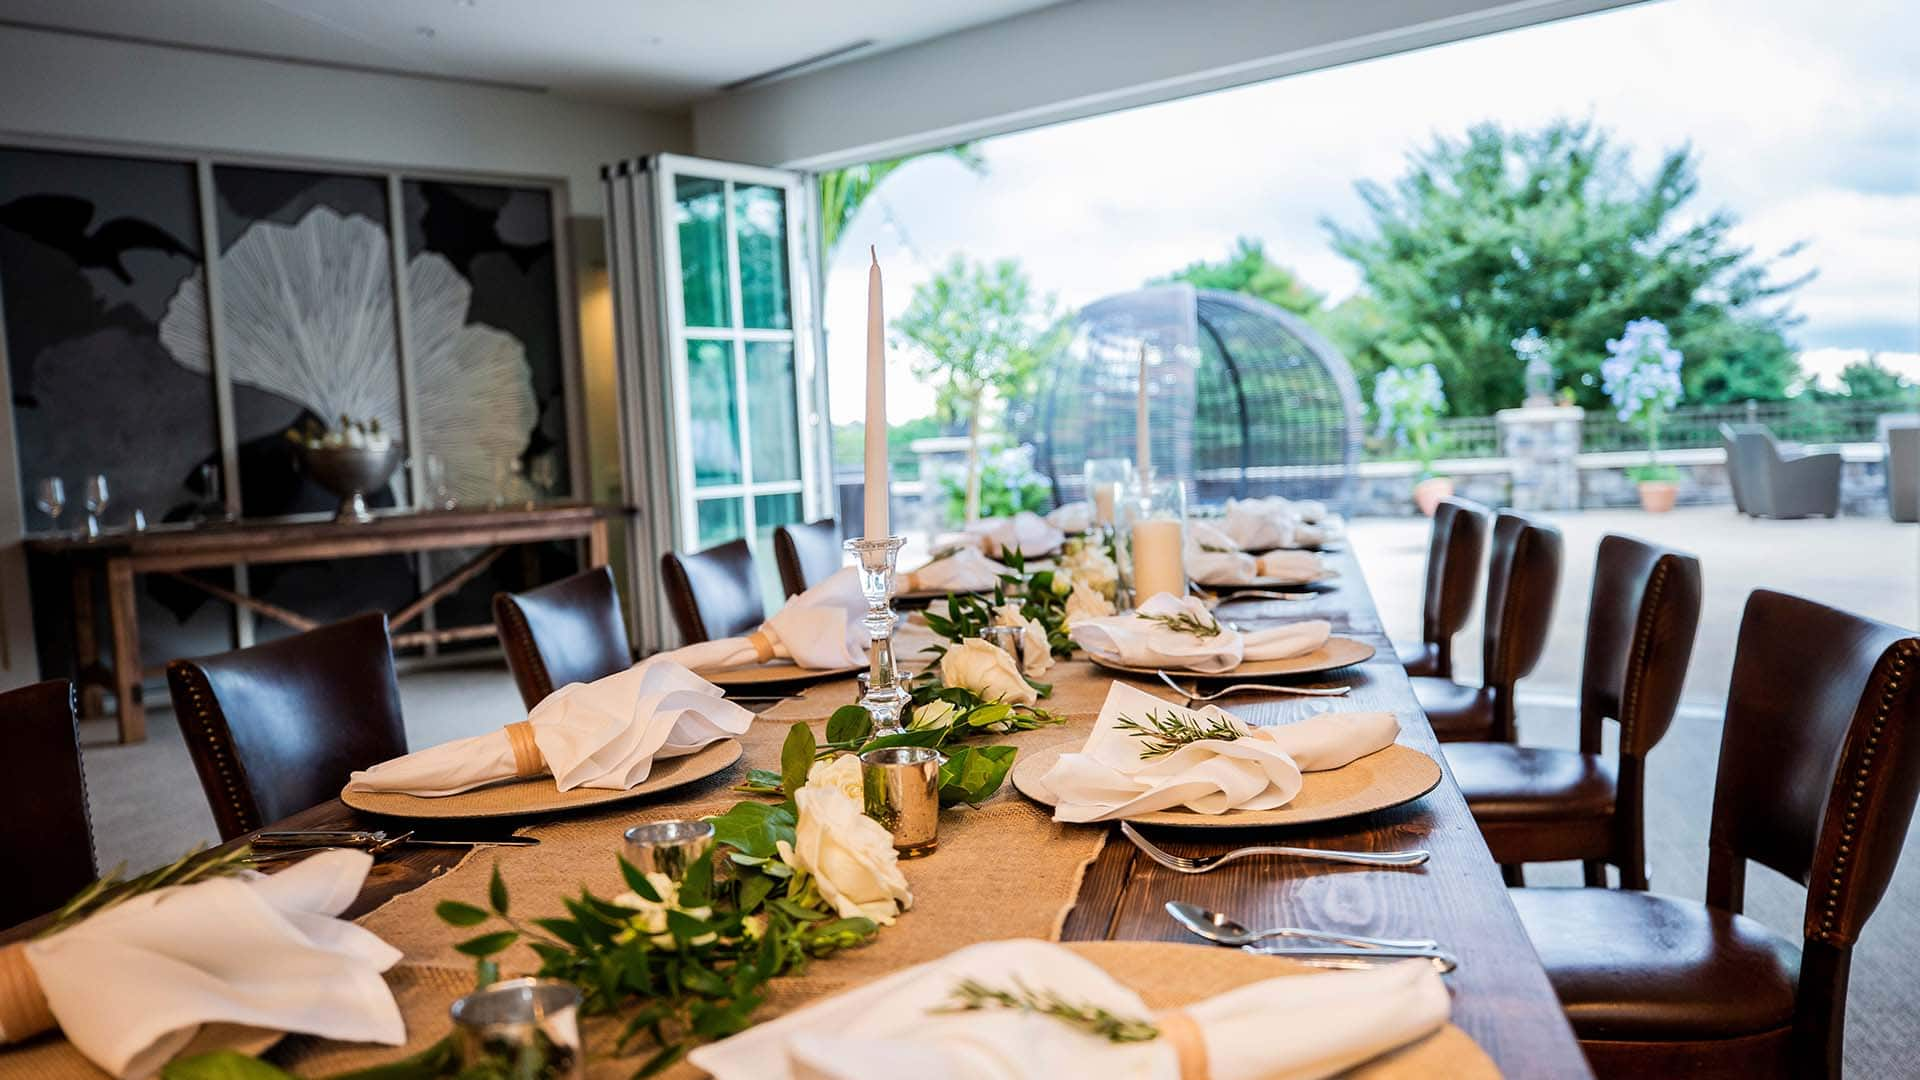 Private dining room with wooden feast table and plate settings with open patio in the background.